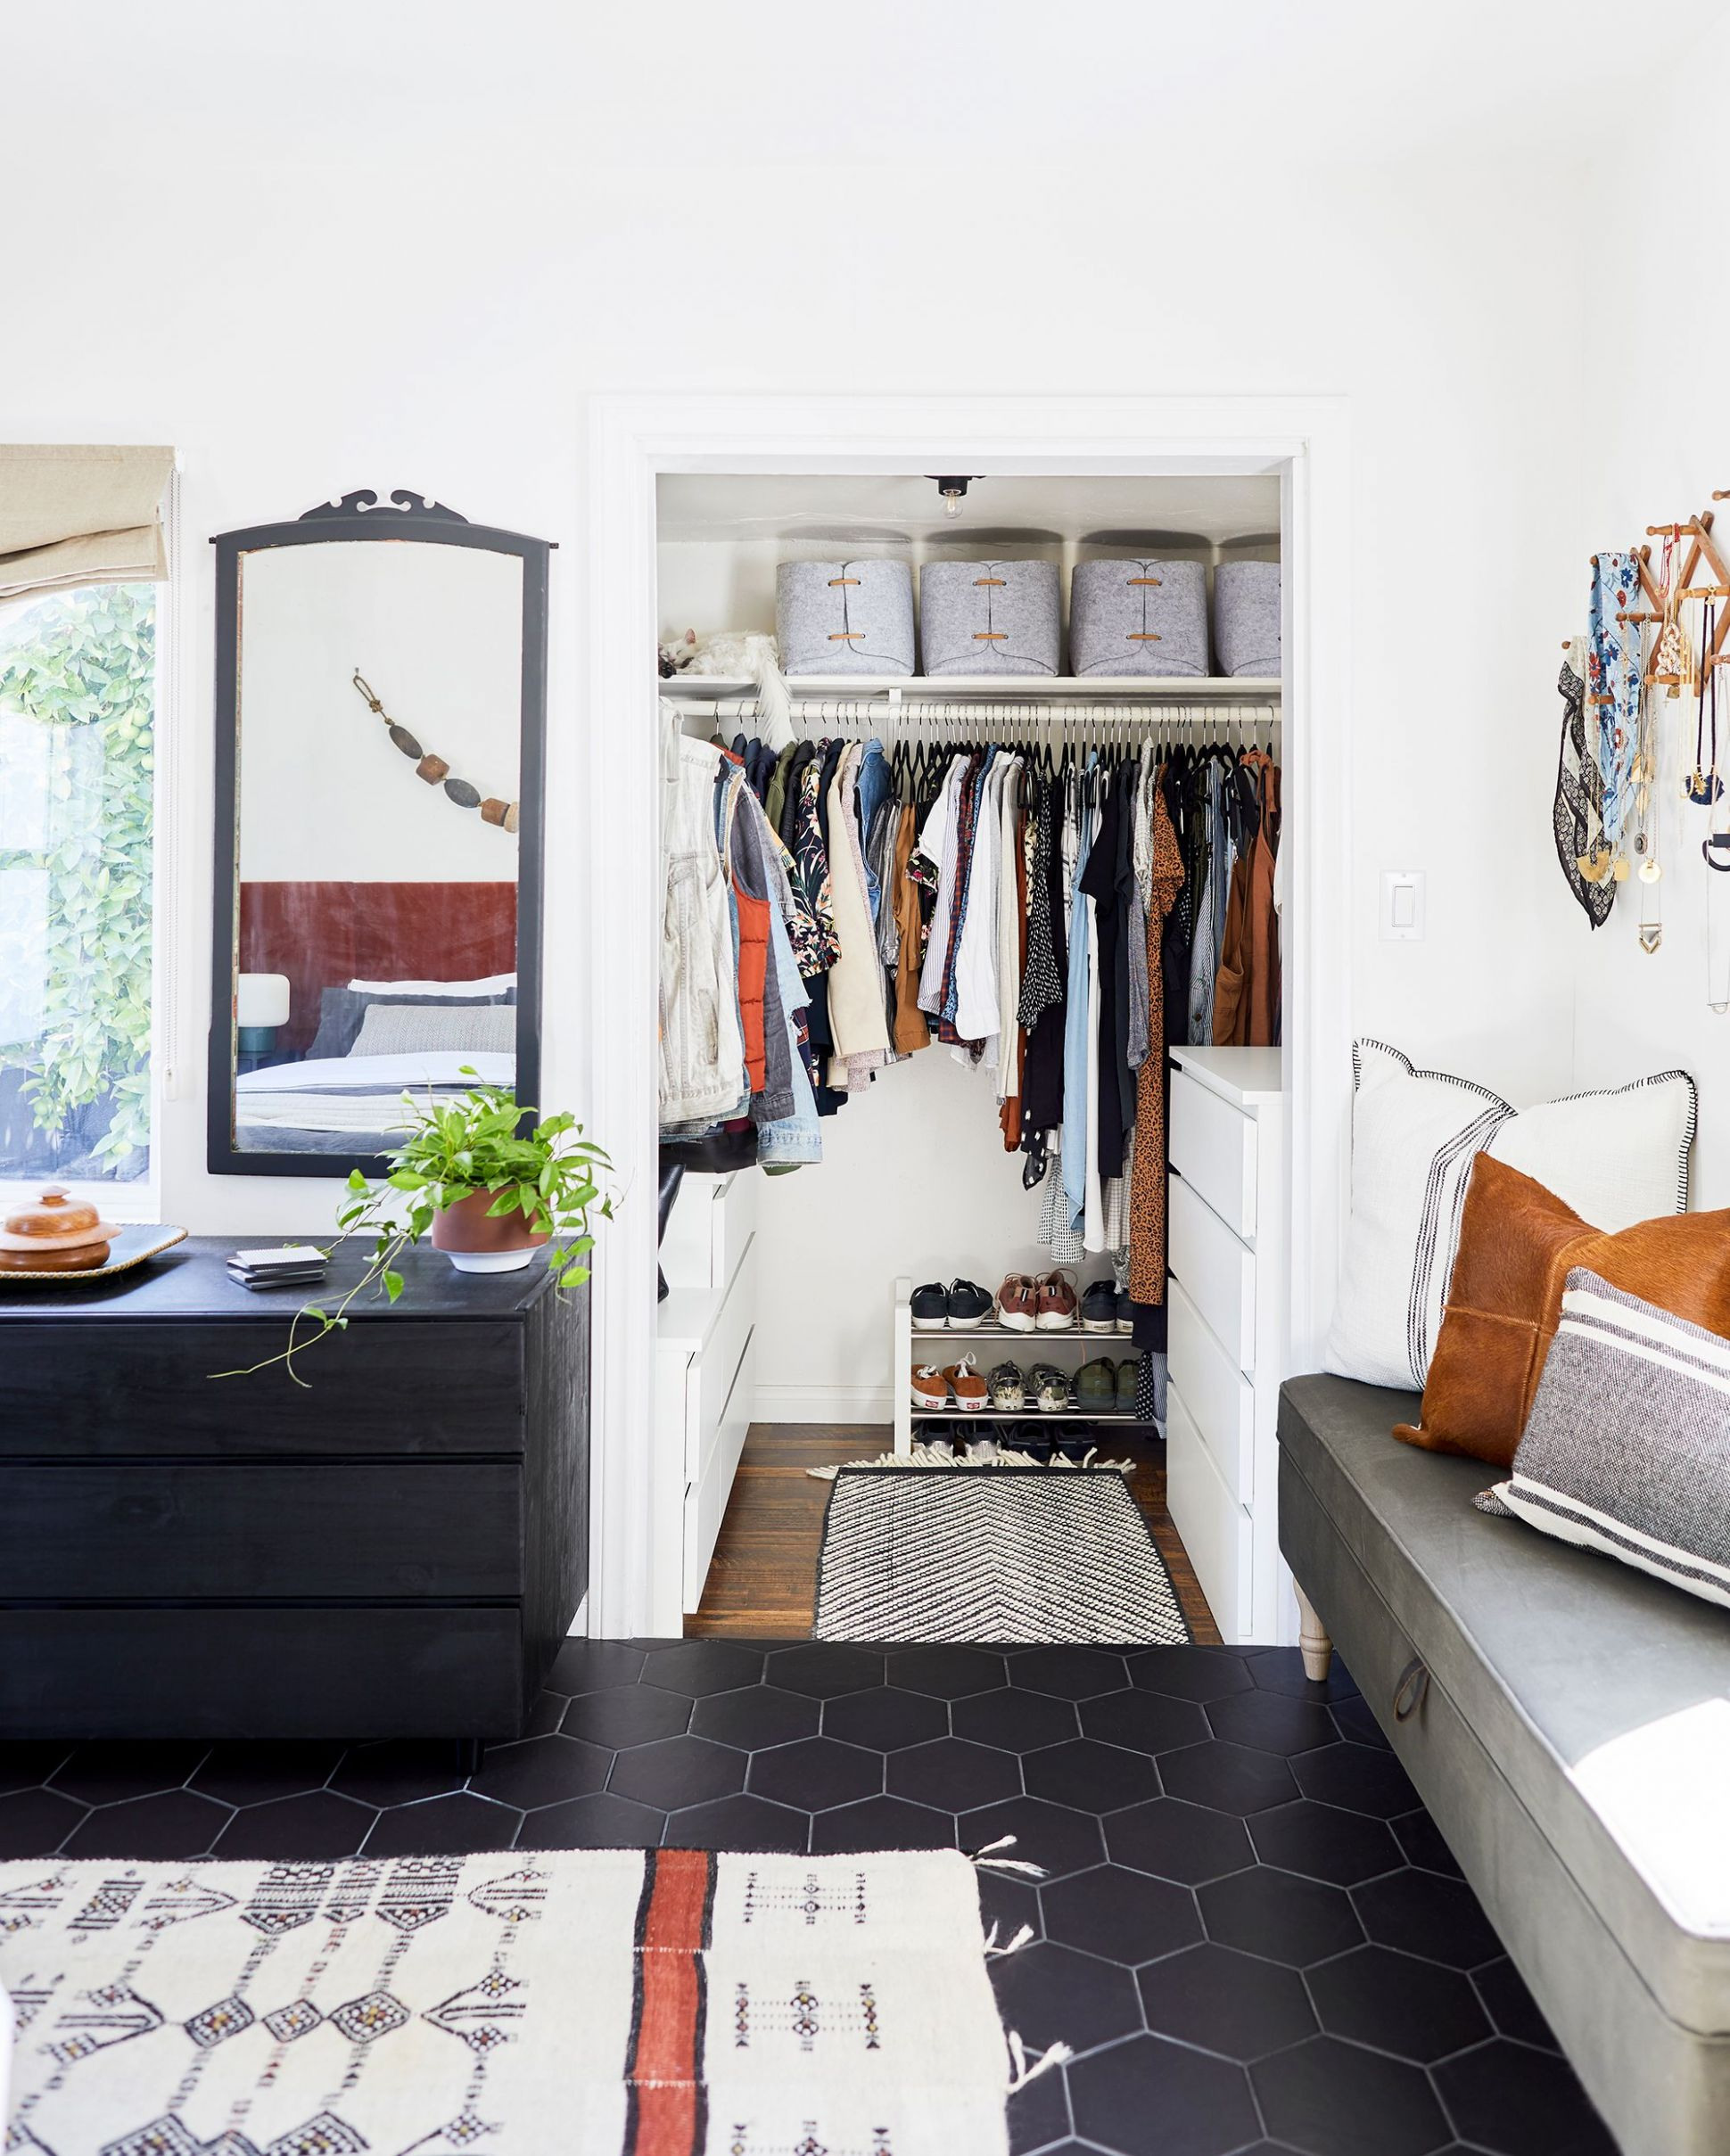 10 Best Small Closet Organization Ideas - Storage Tip for Small ...